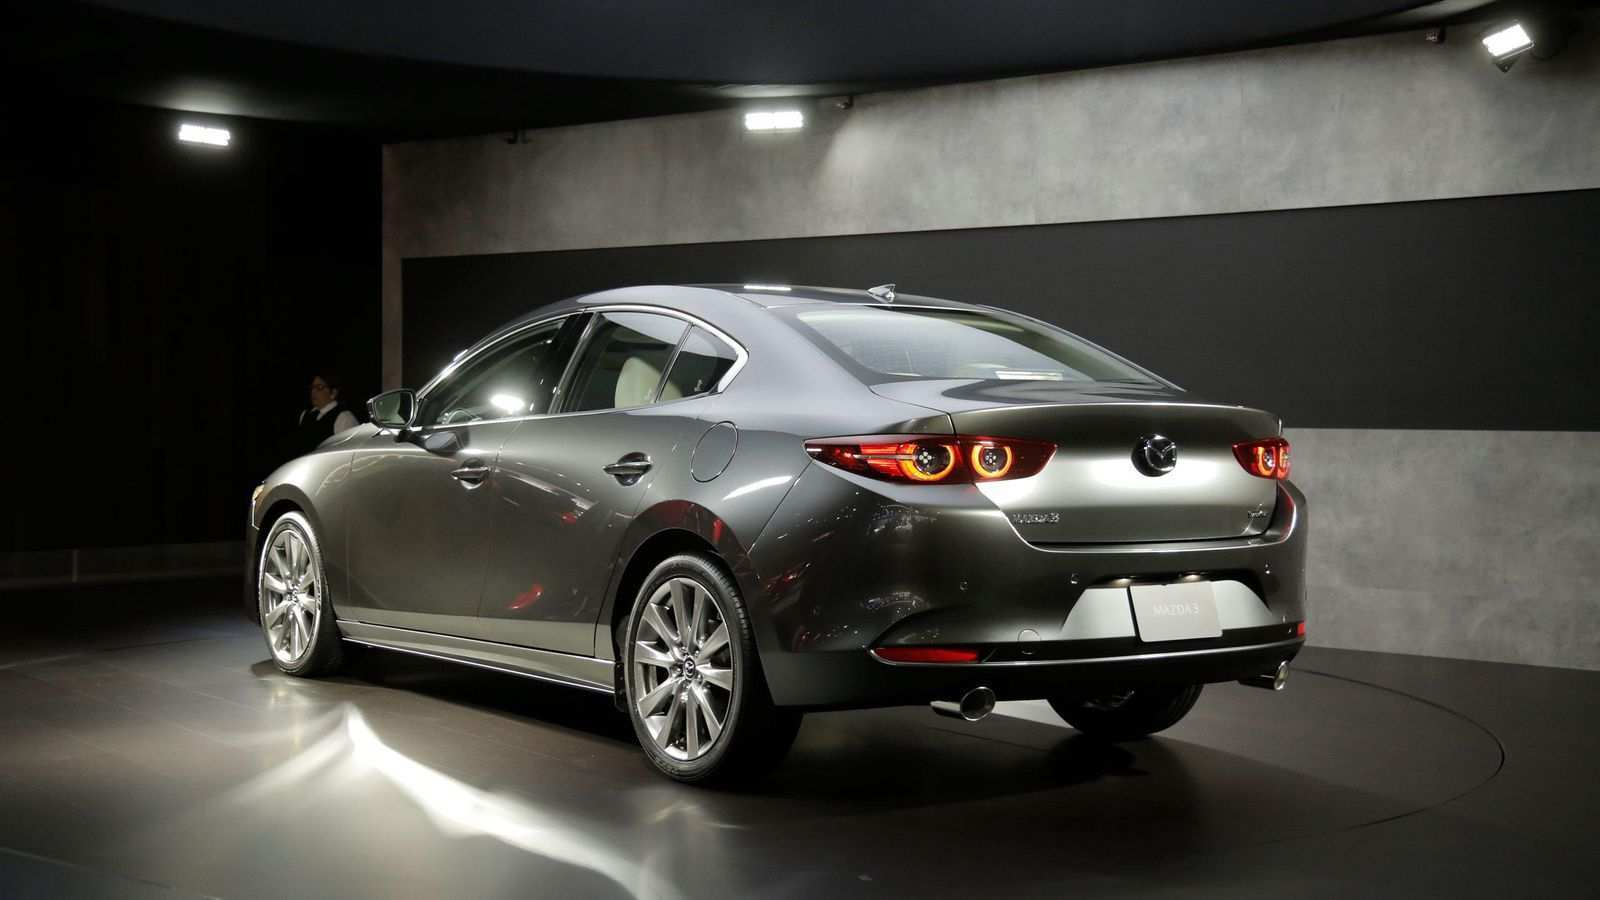 Mazda 3 Forum >> 41 Concept Of Mazda 3 2019 Forum Spy Shoot By Mazda 3 2019 Forum